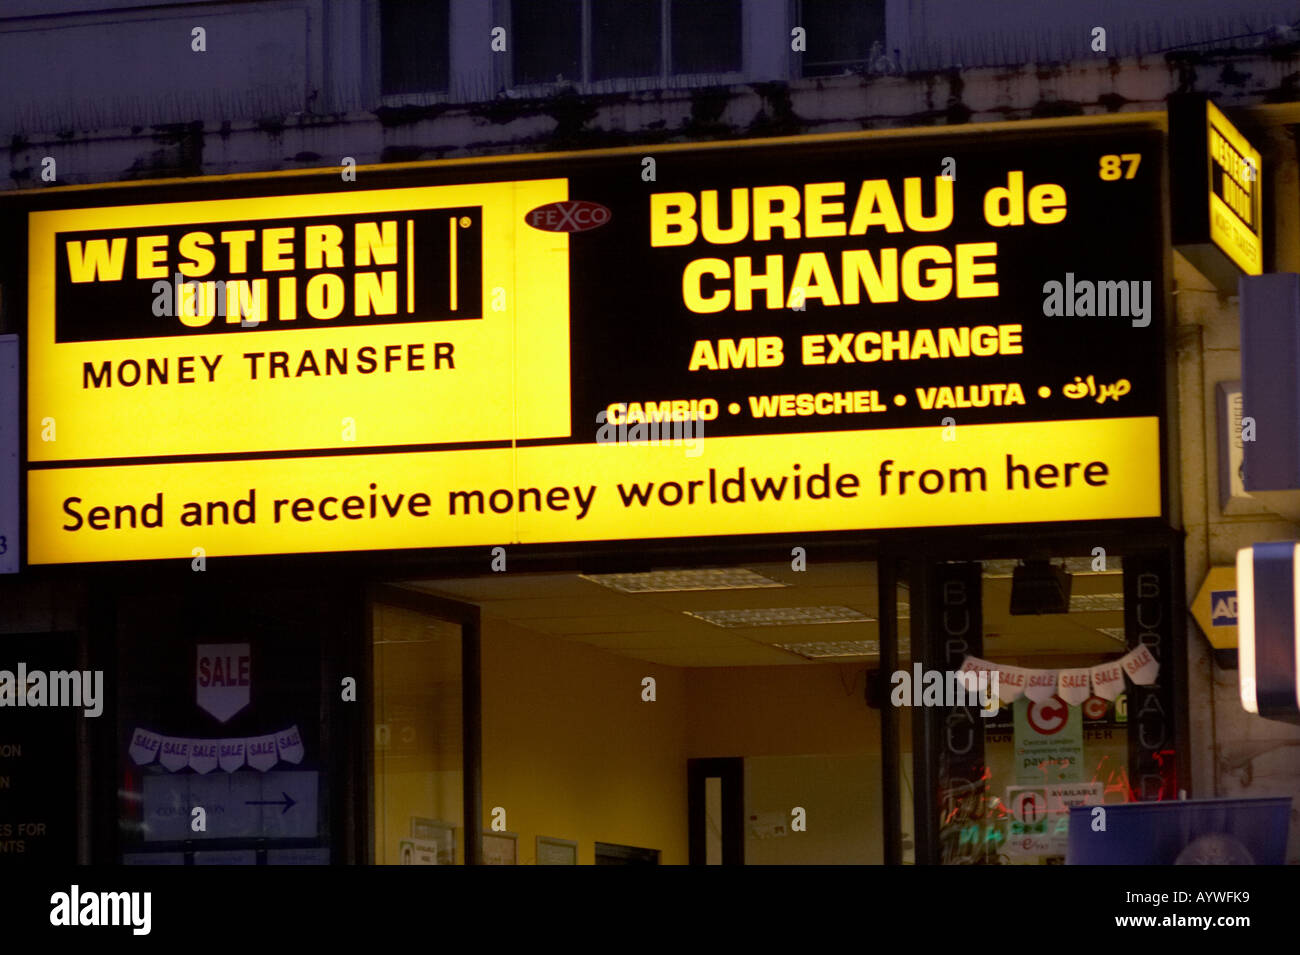 western union money transfer bureau de change in london uk stock photo royalty free image. Black Bedroom Furniture Sets. Home Design Ideas